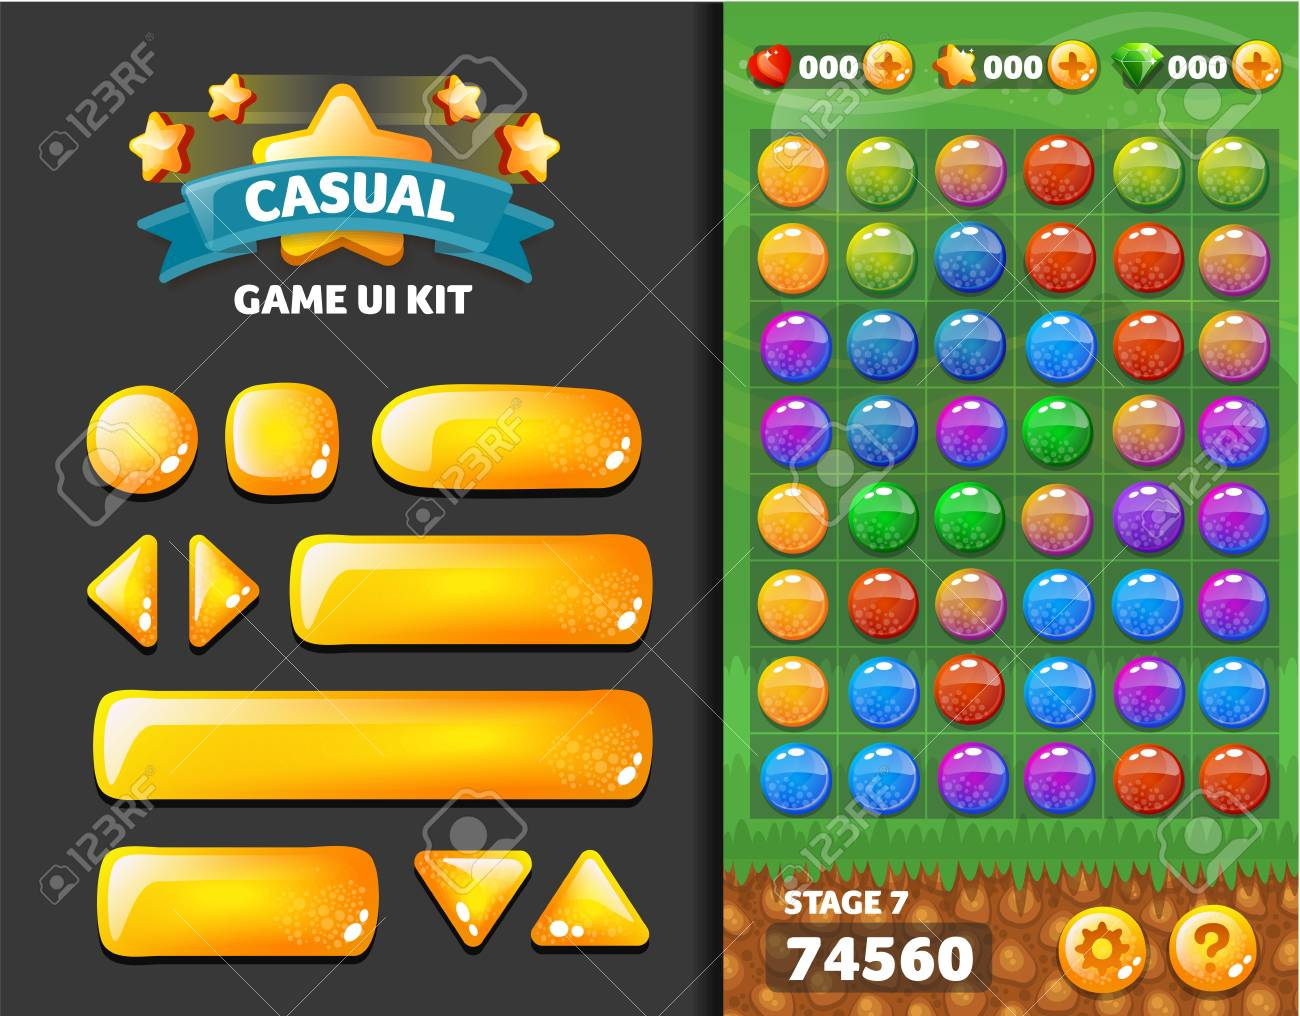 set of buttons for mobile development, casual games, UI kit